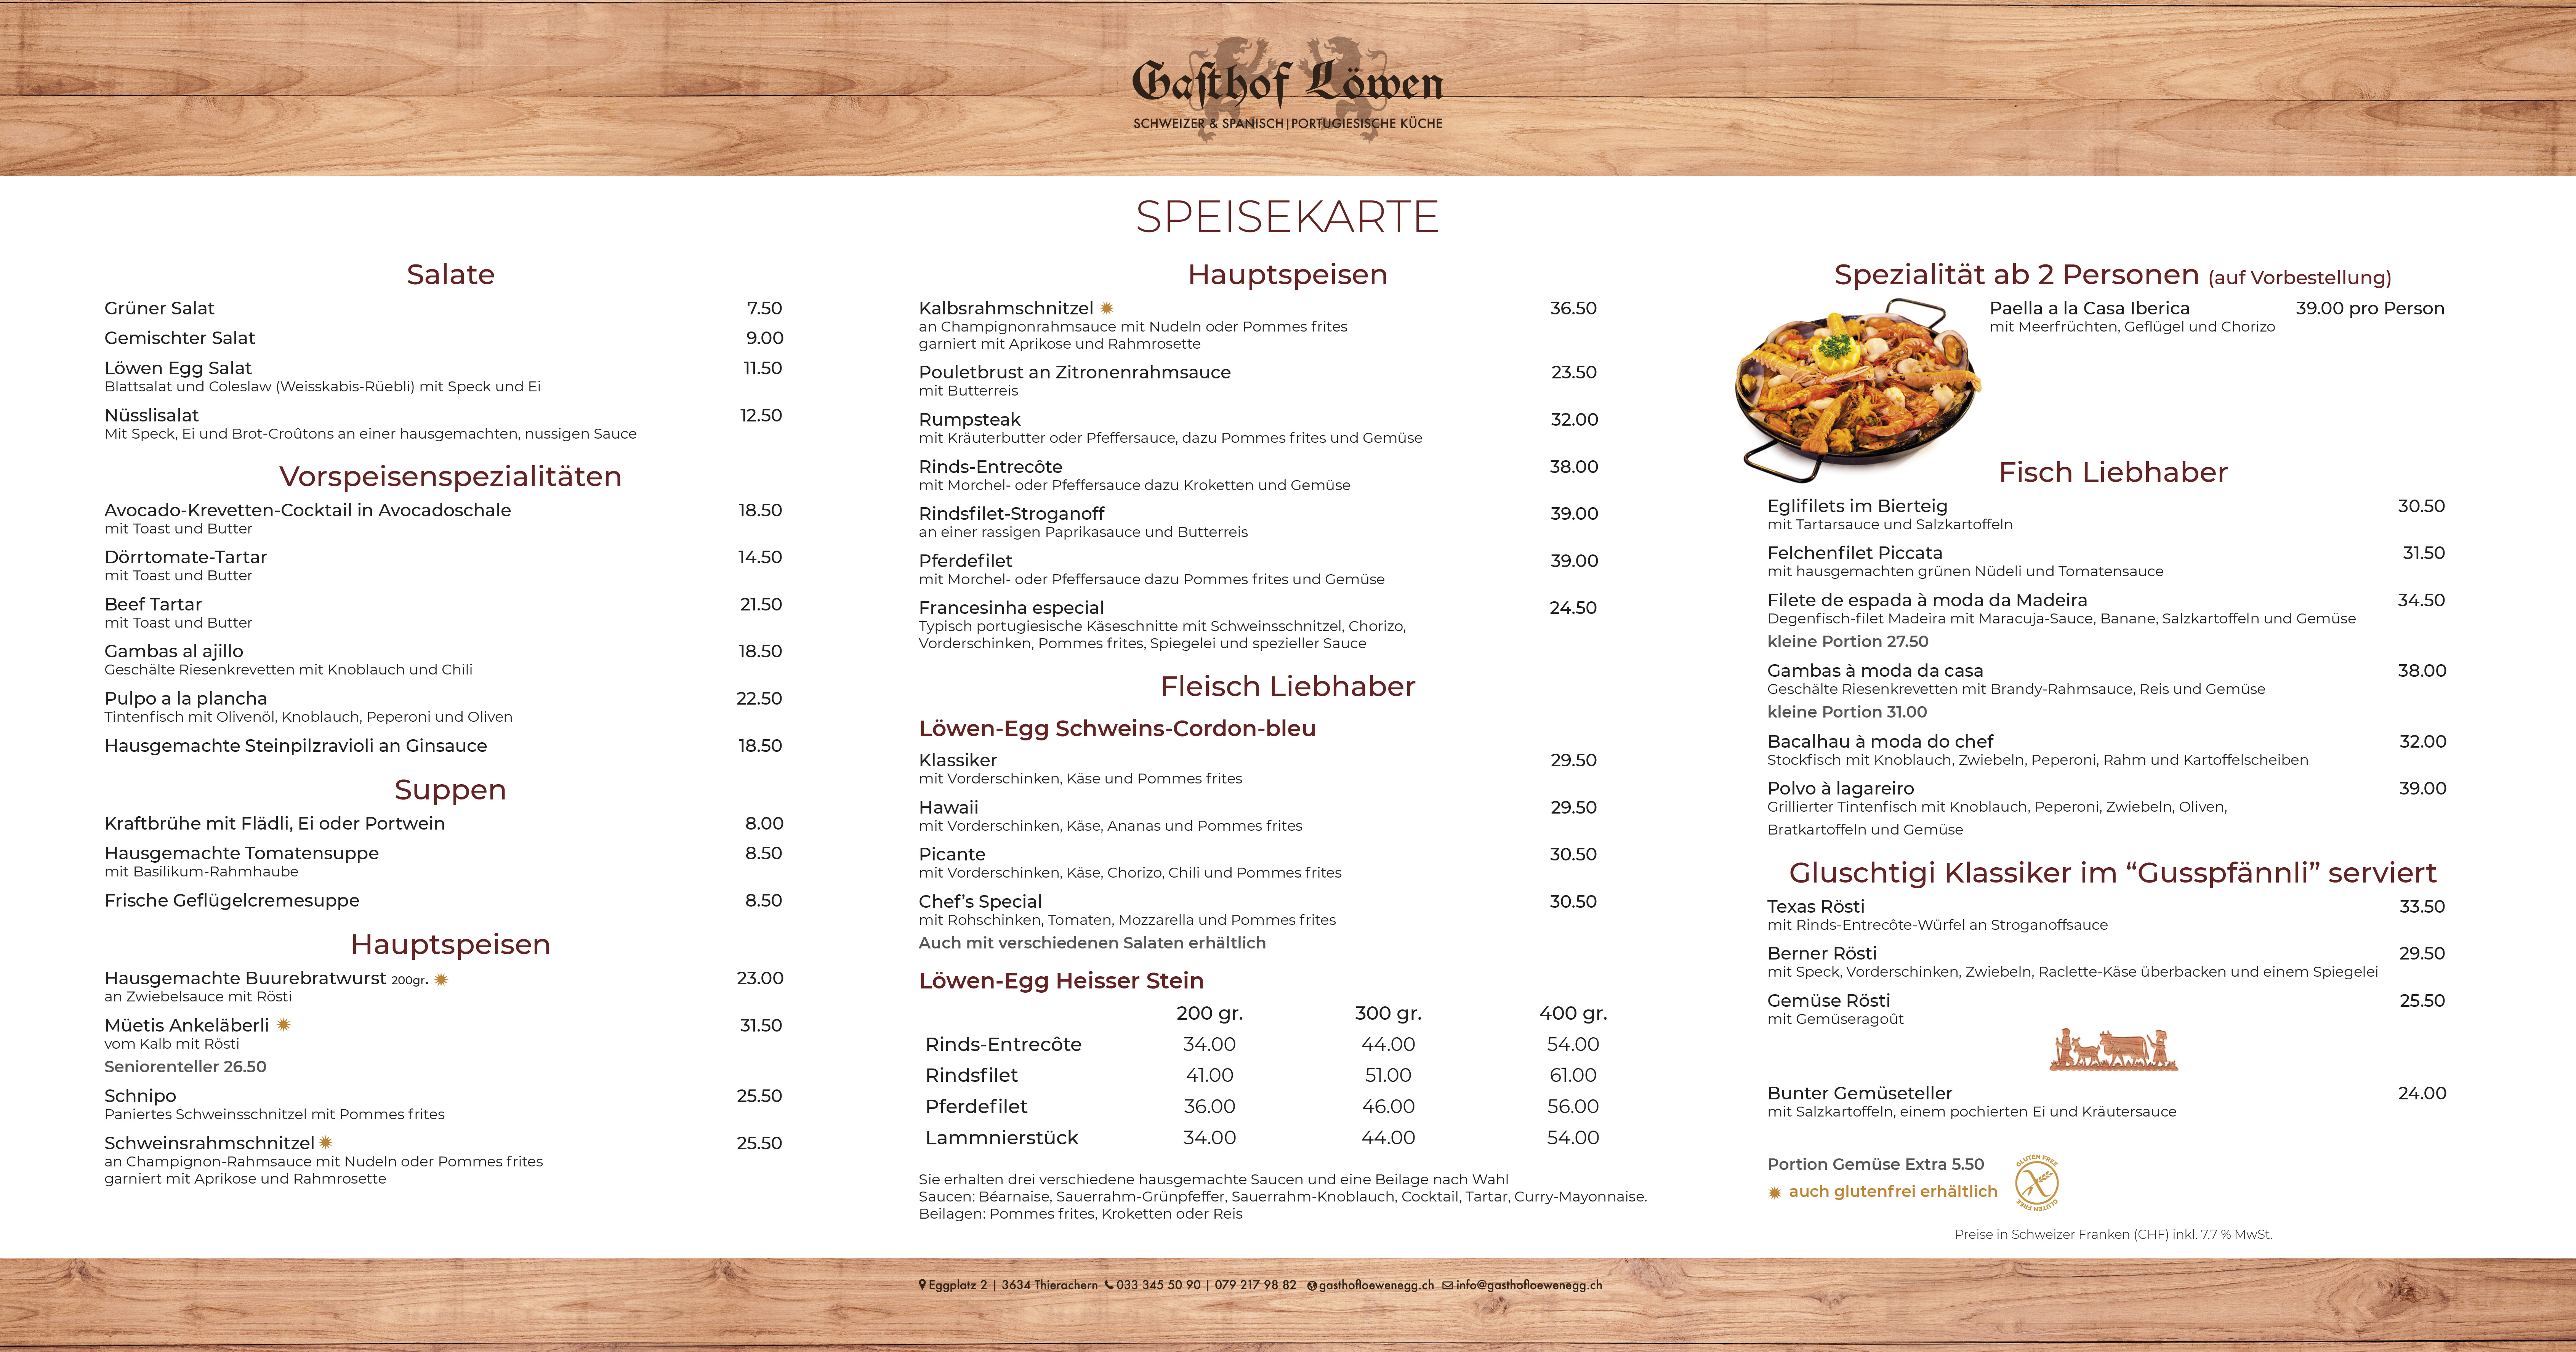 Speisekarte restaurant ambrose bettingen switzerland immobilien 54646 bettingen bs